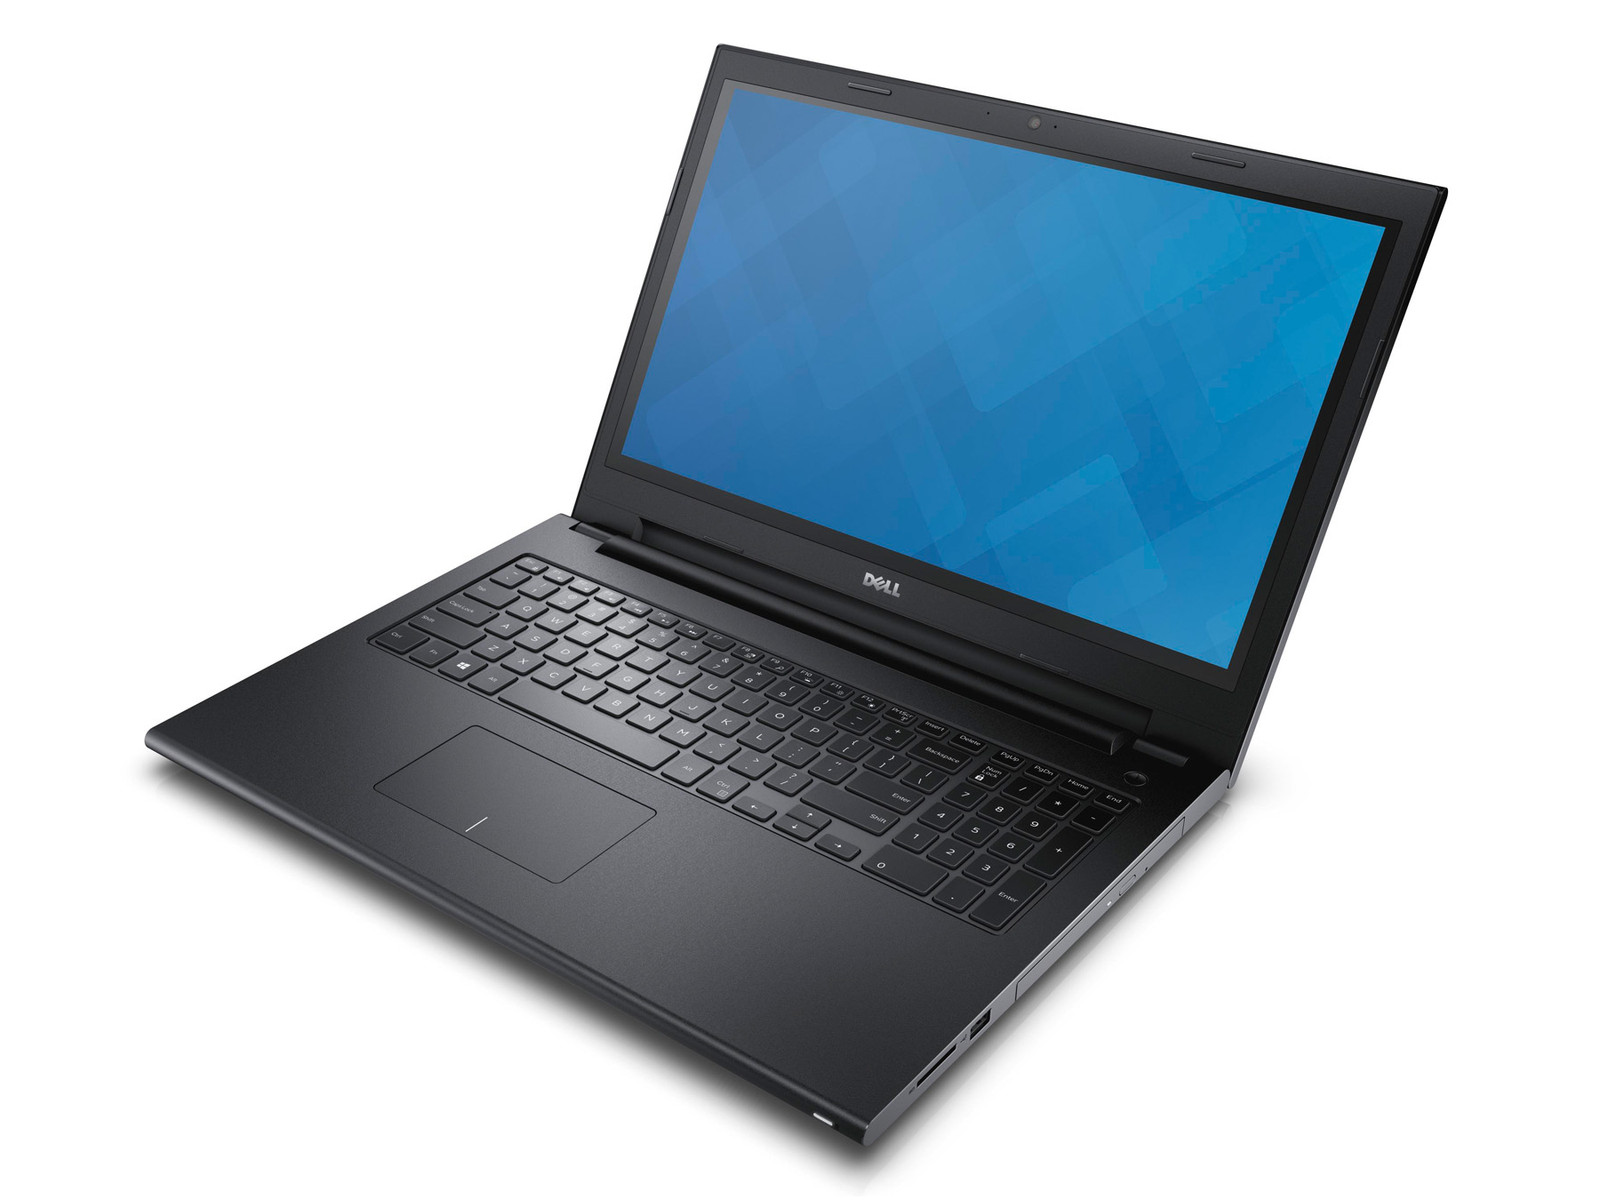 dell inspiron 15 notebook review